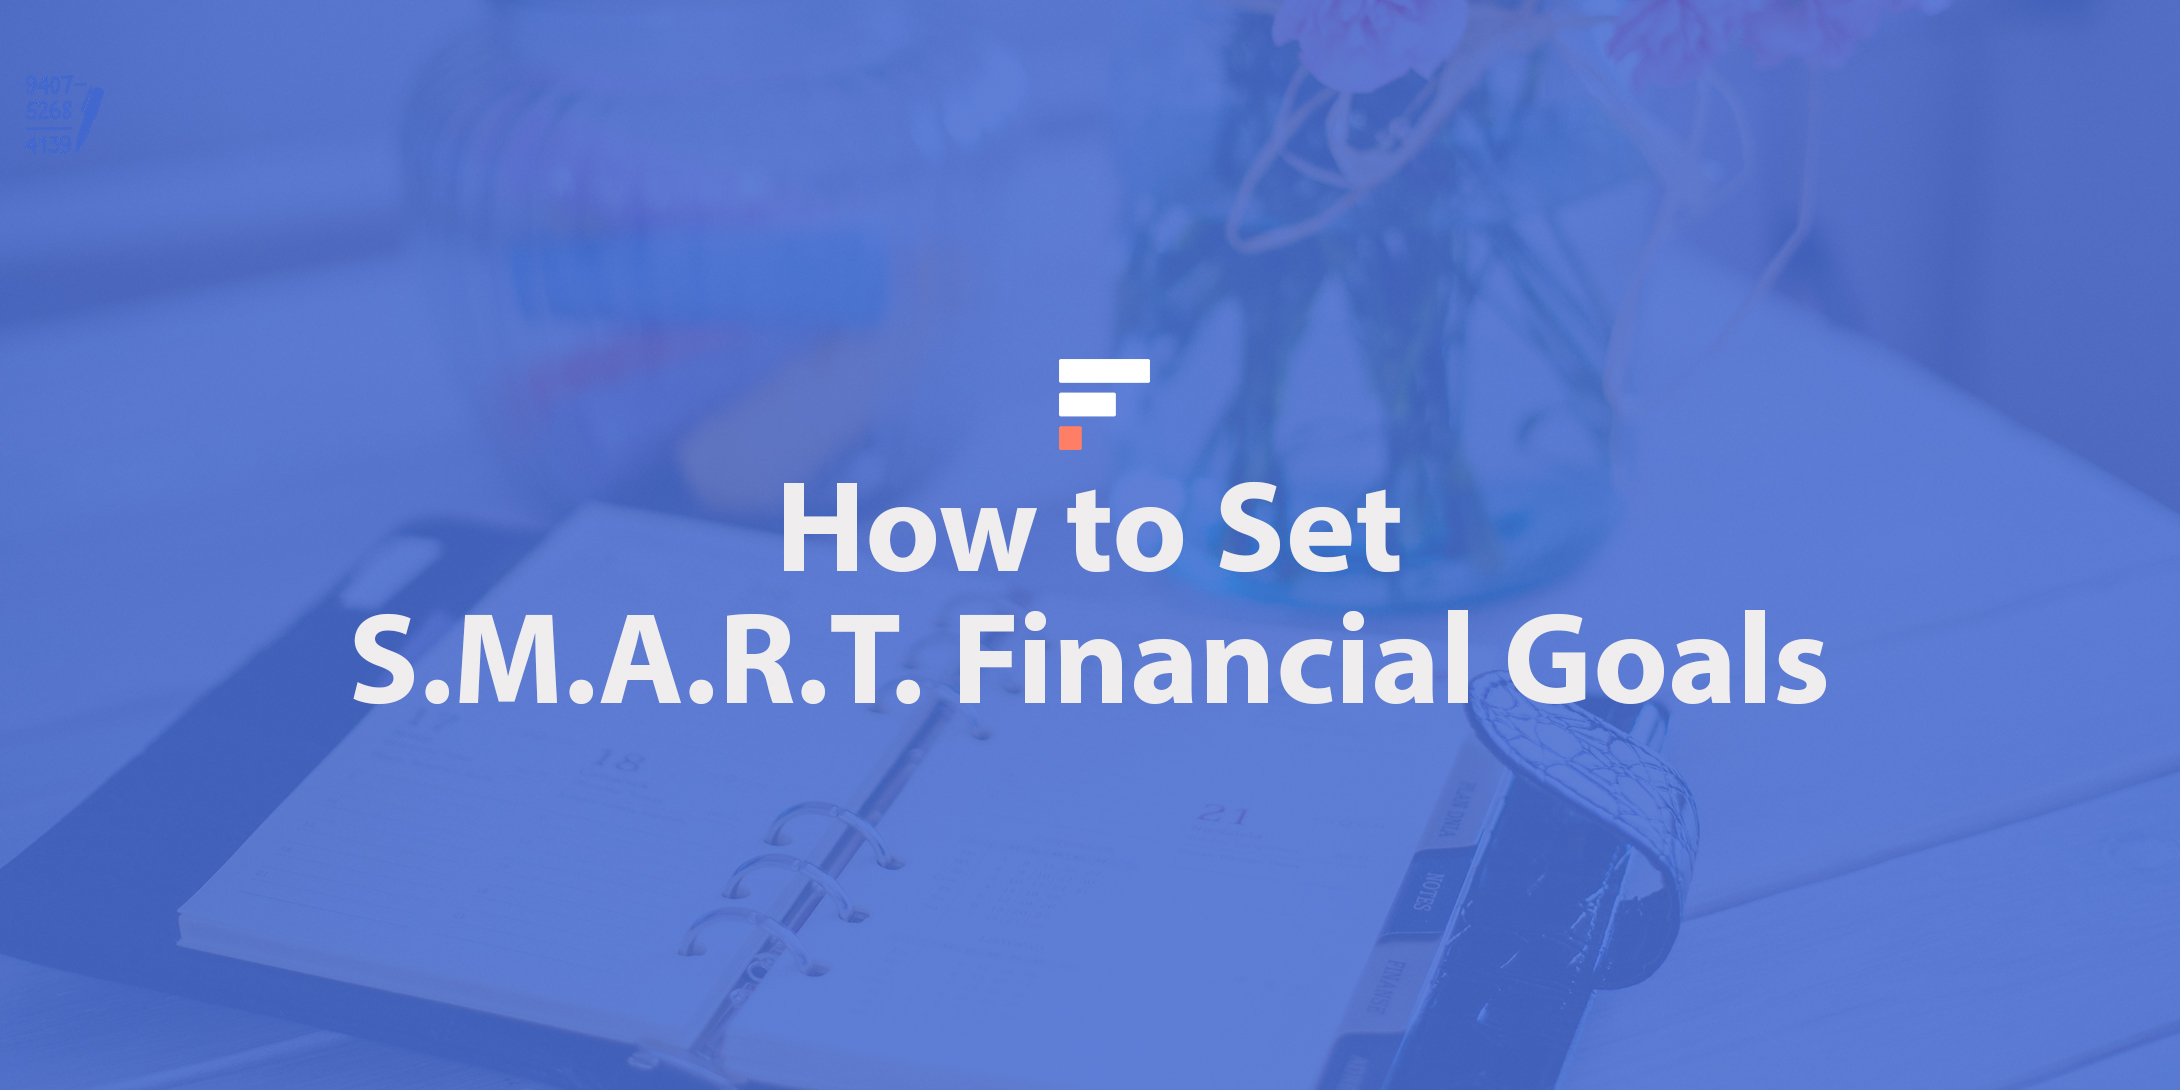 How to set S.M.A.R.T. financial goals